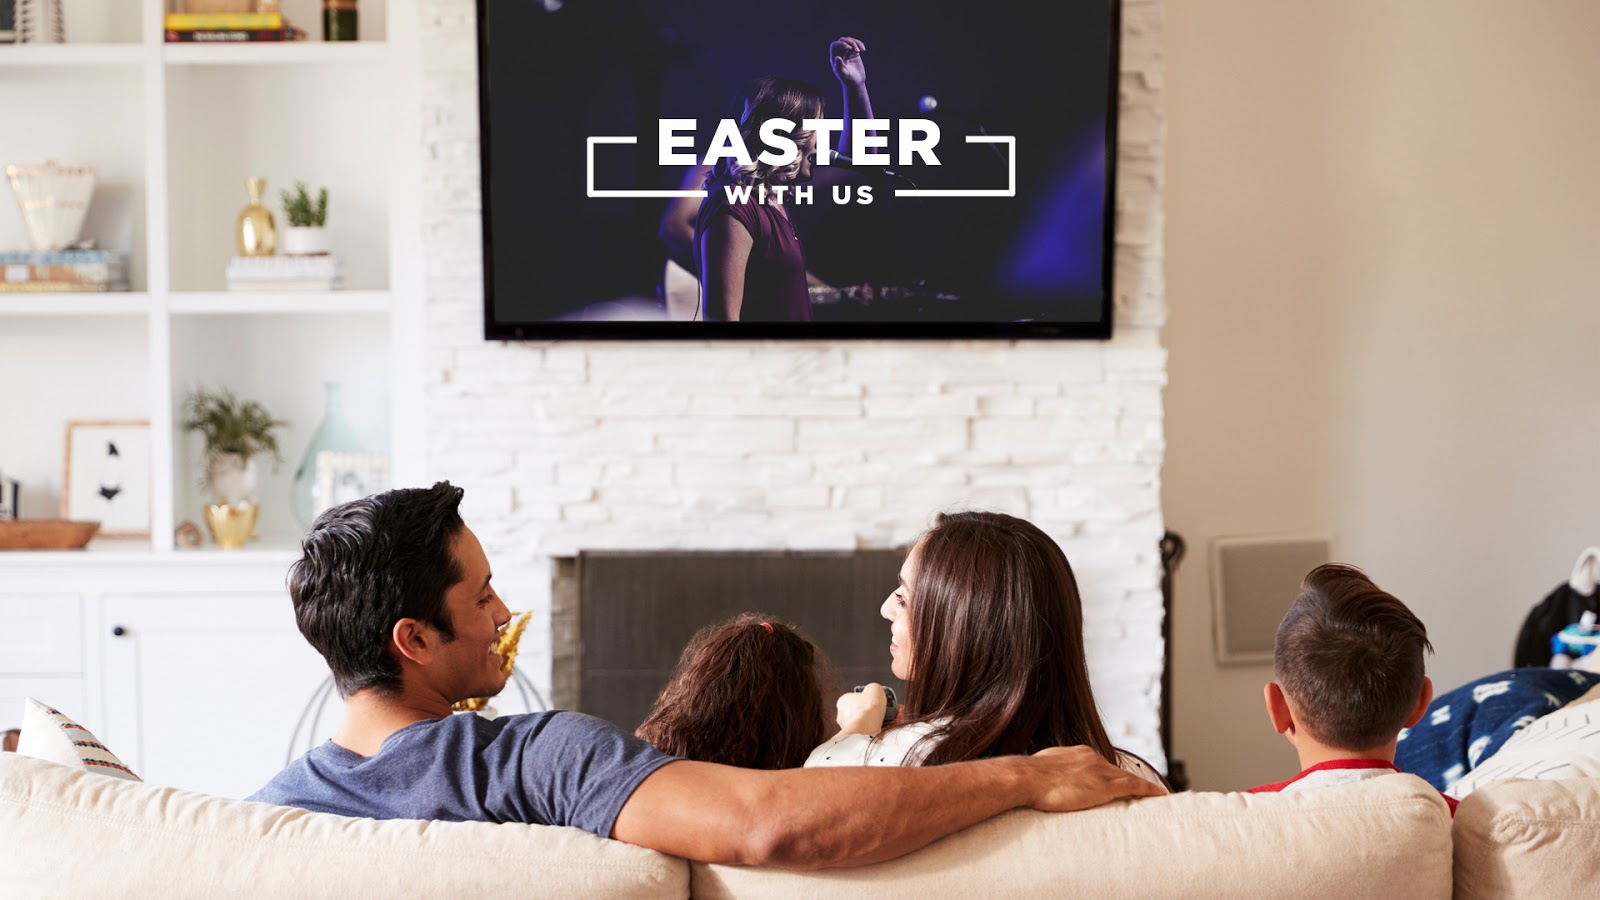 Family at home streaming a church service on their TV